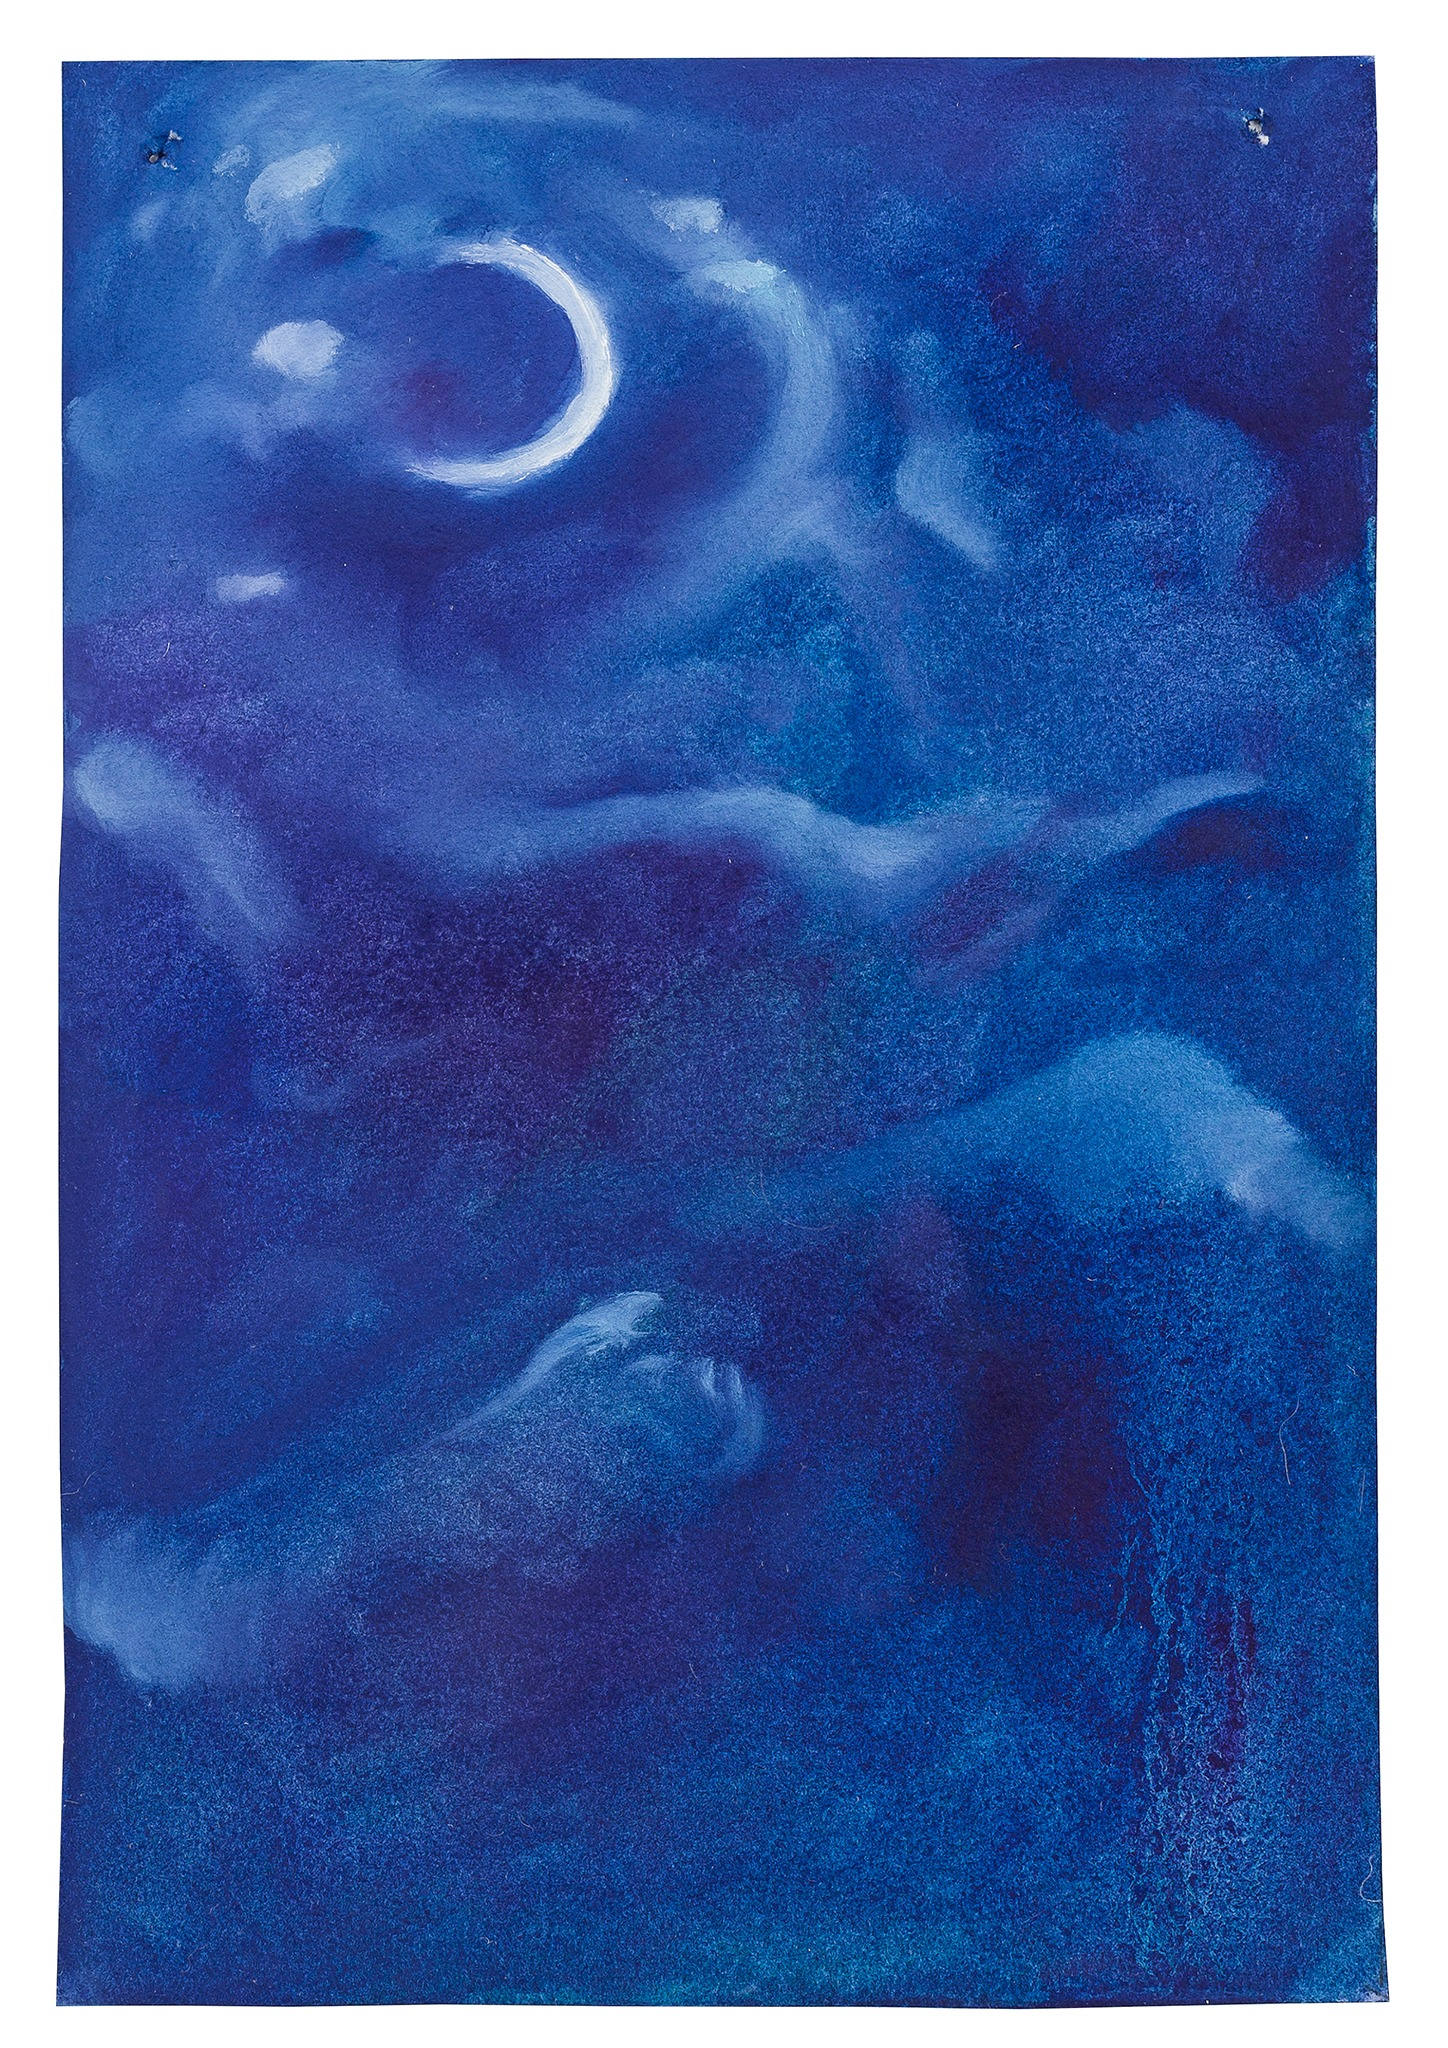 A painting by Aaron Michael Skolnick titled Night Sky, dated 2020.